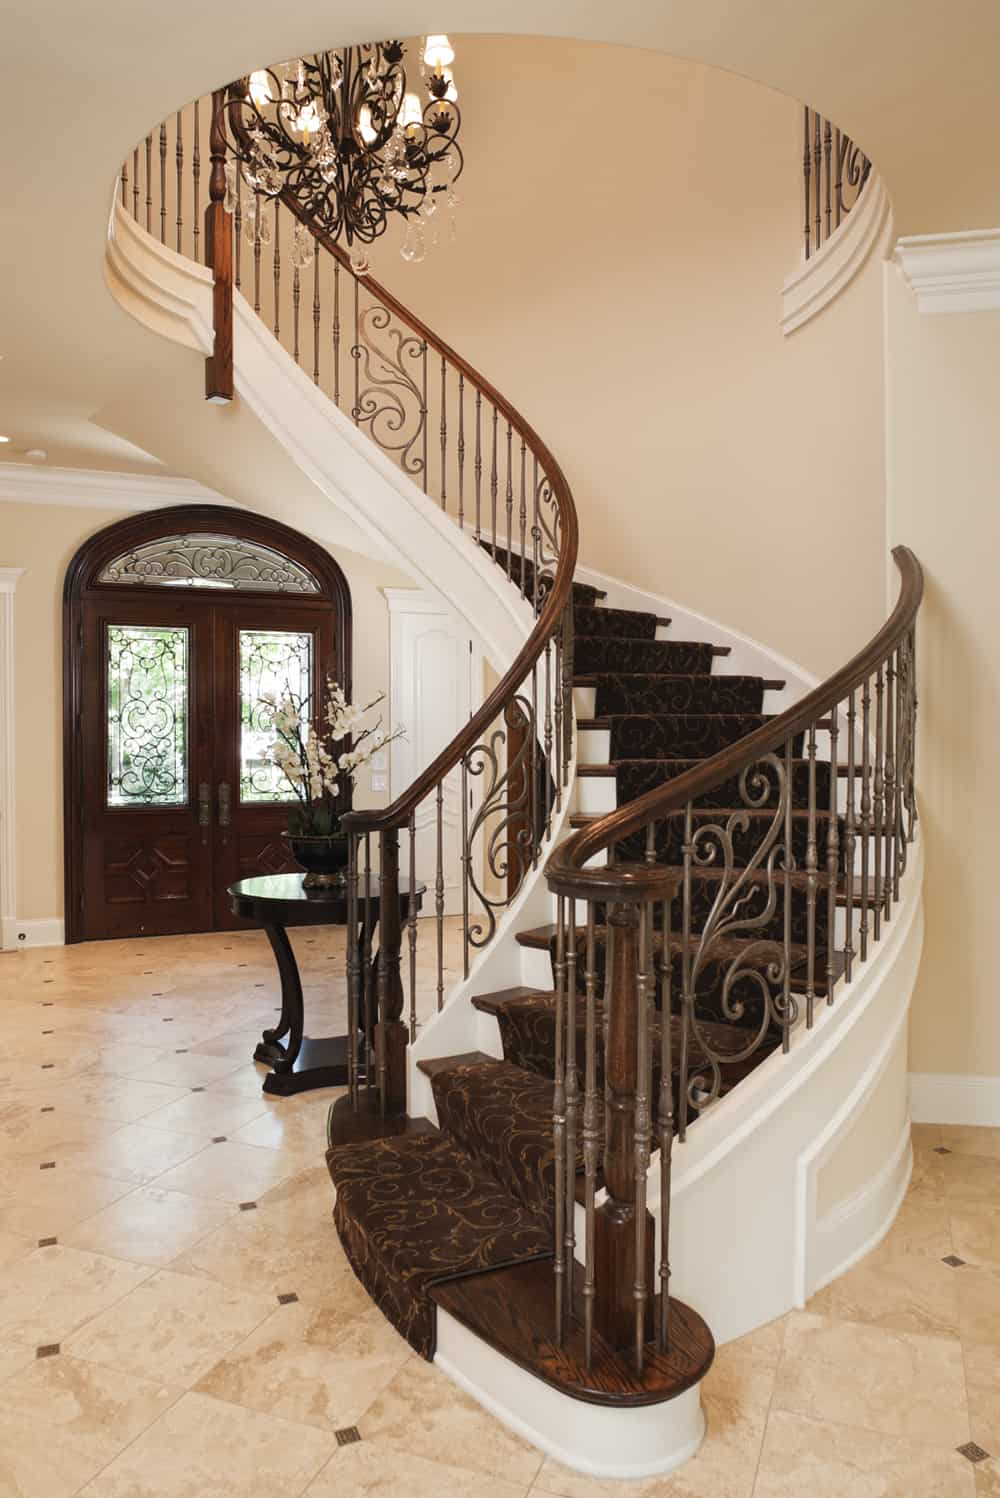 At the center of this spacious foyer is a spiral staircase up the next floor, complete with a floral chandelier.